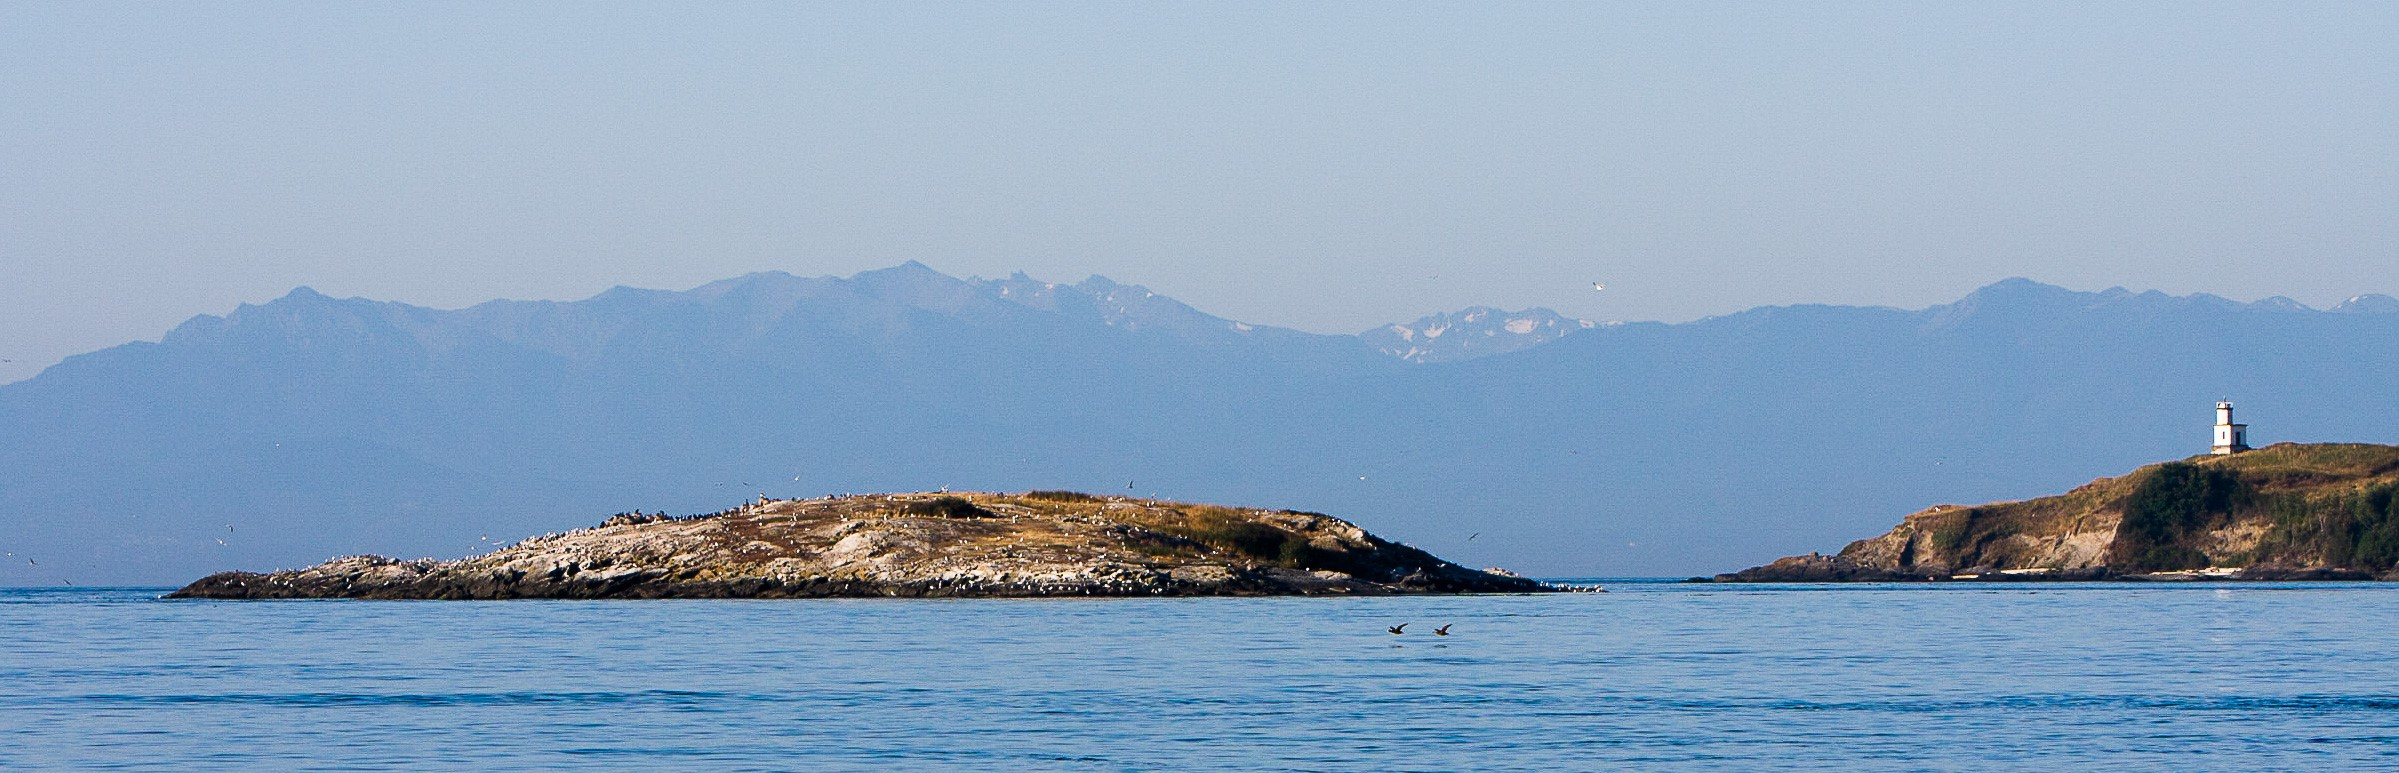 Goose Island, the Cattle Point Lighthouse on the right and the Olympic Mountains in the background across the Strait of Juan de Fuca